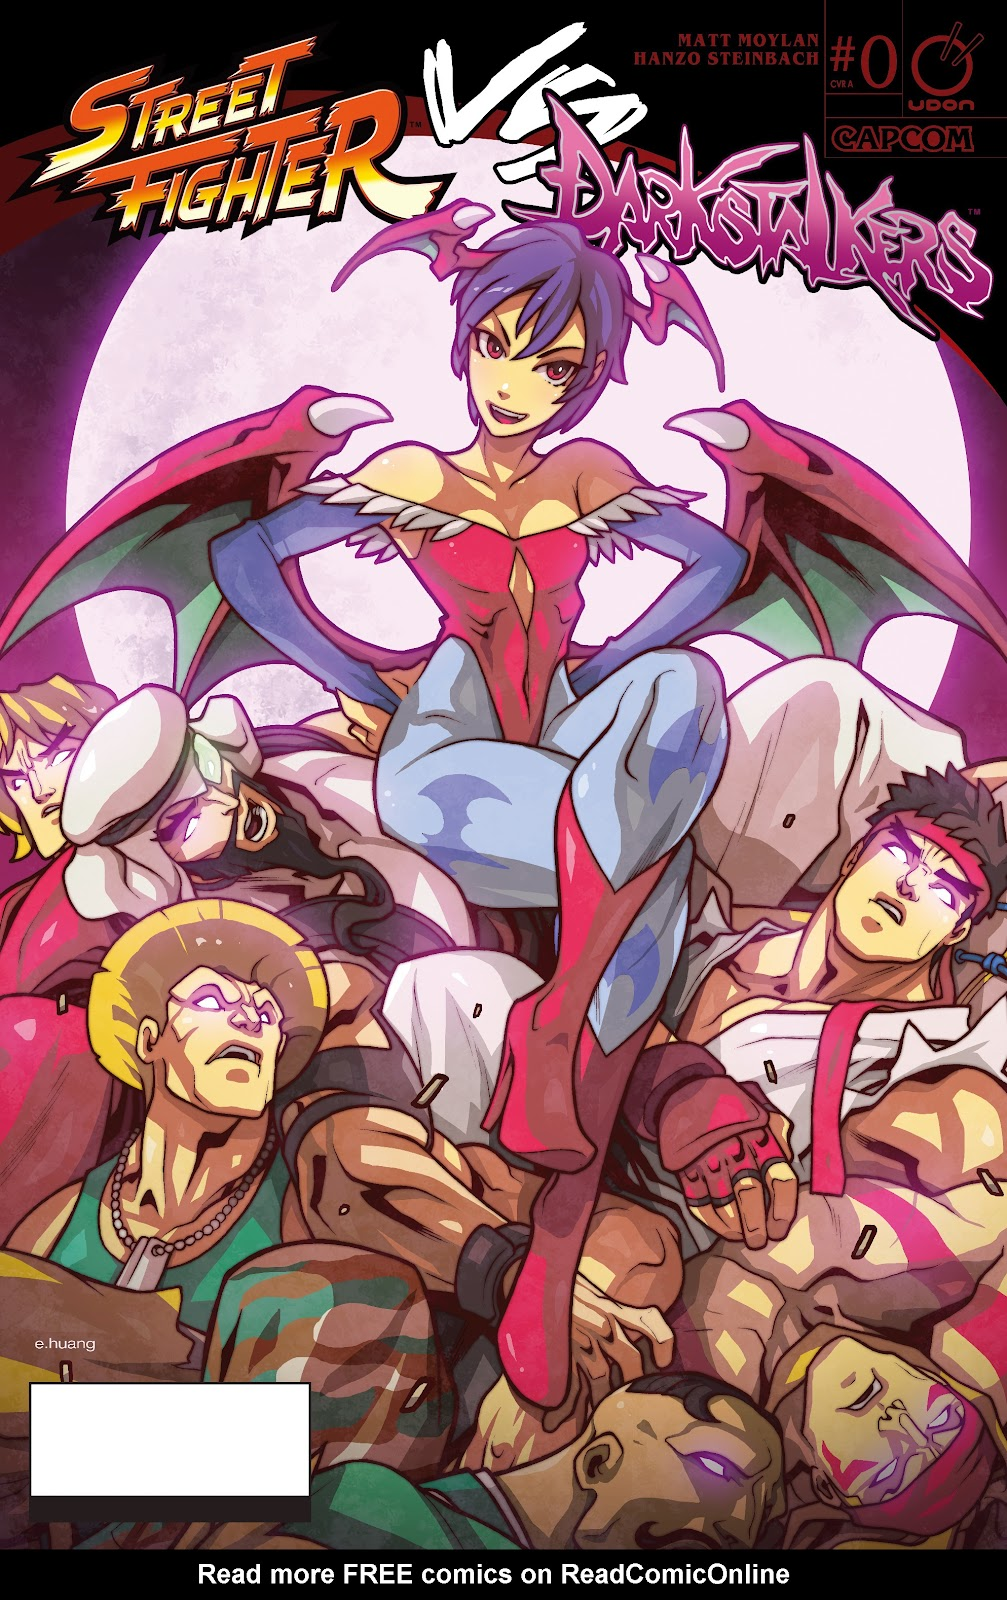 Street Fighter VS Darkstalkers Issue #0 #1 - English 1